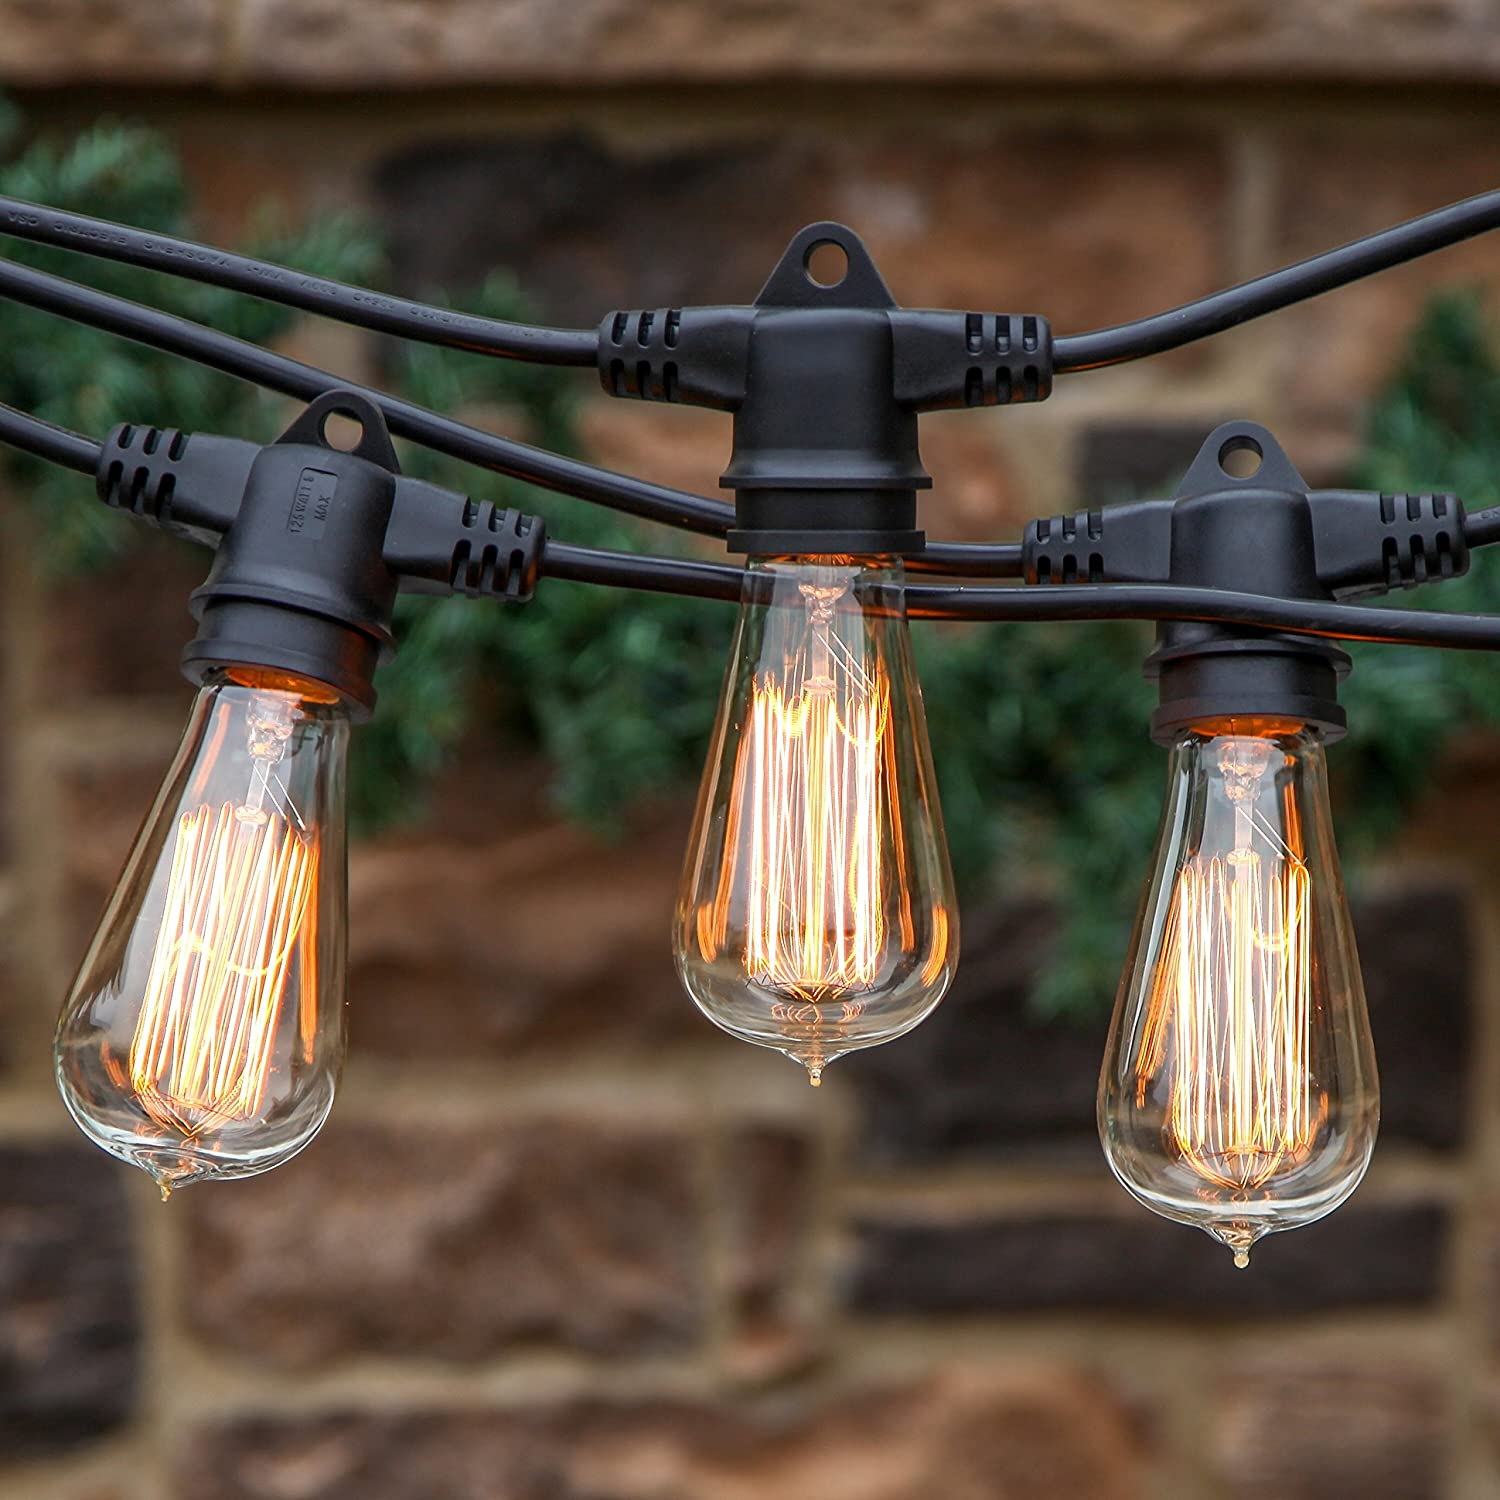 20 Stunning Rustic Edison Bulbs Wedding Decor Ideas Deer Pearl Flowers